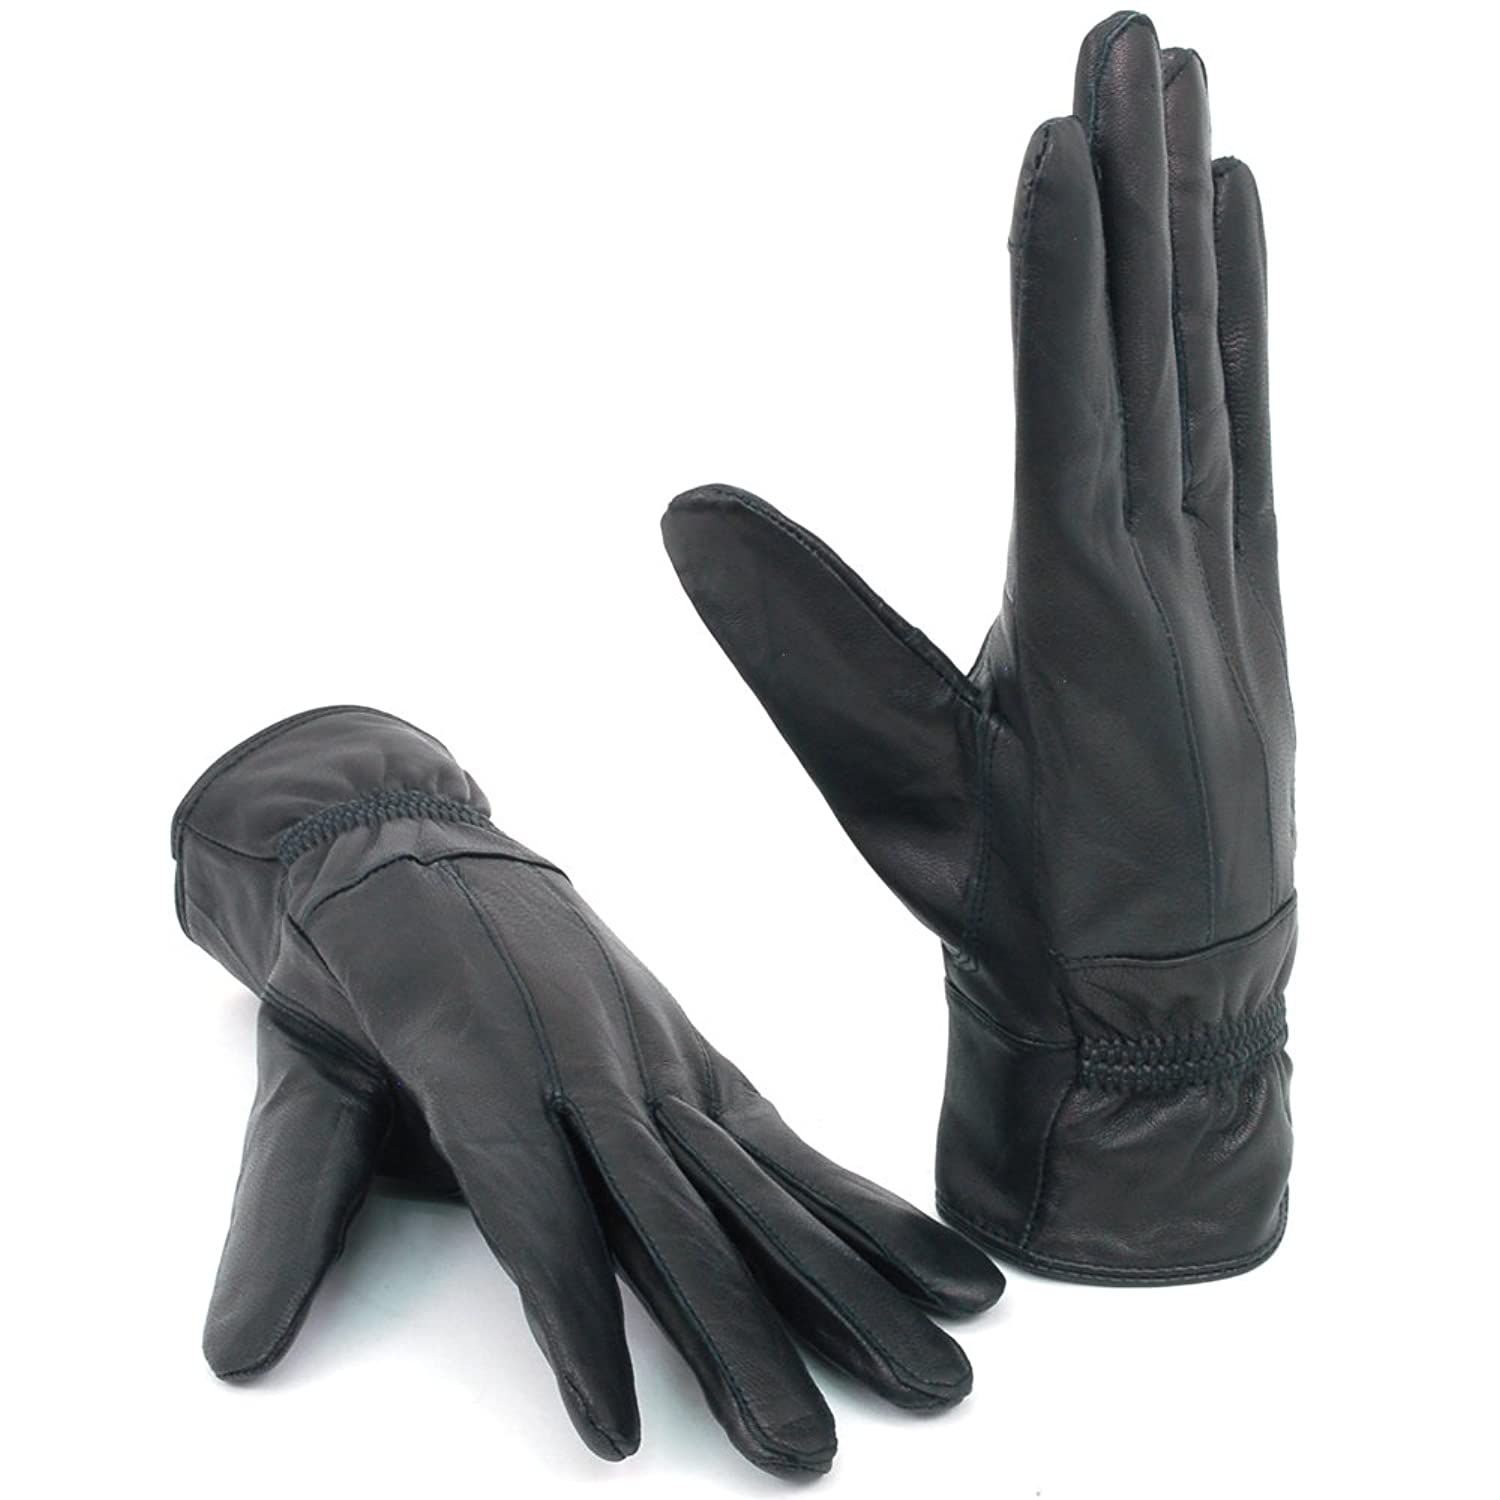 Ladies leather gloves with thinsulate - Alpine Swiss Womens Touch Screen Gloves Leather Phone Texting Glove Thermal Warm At Amazon Women S Clothing Store Cold Weather Gloves